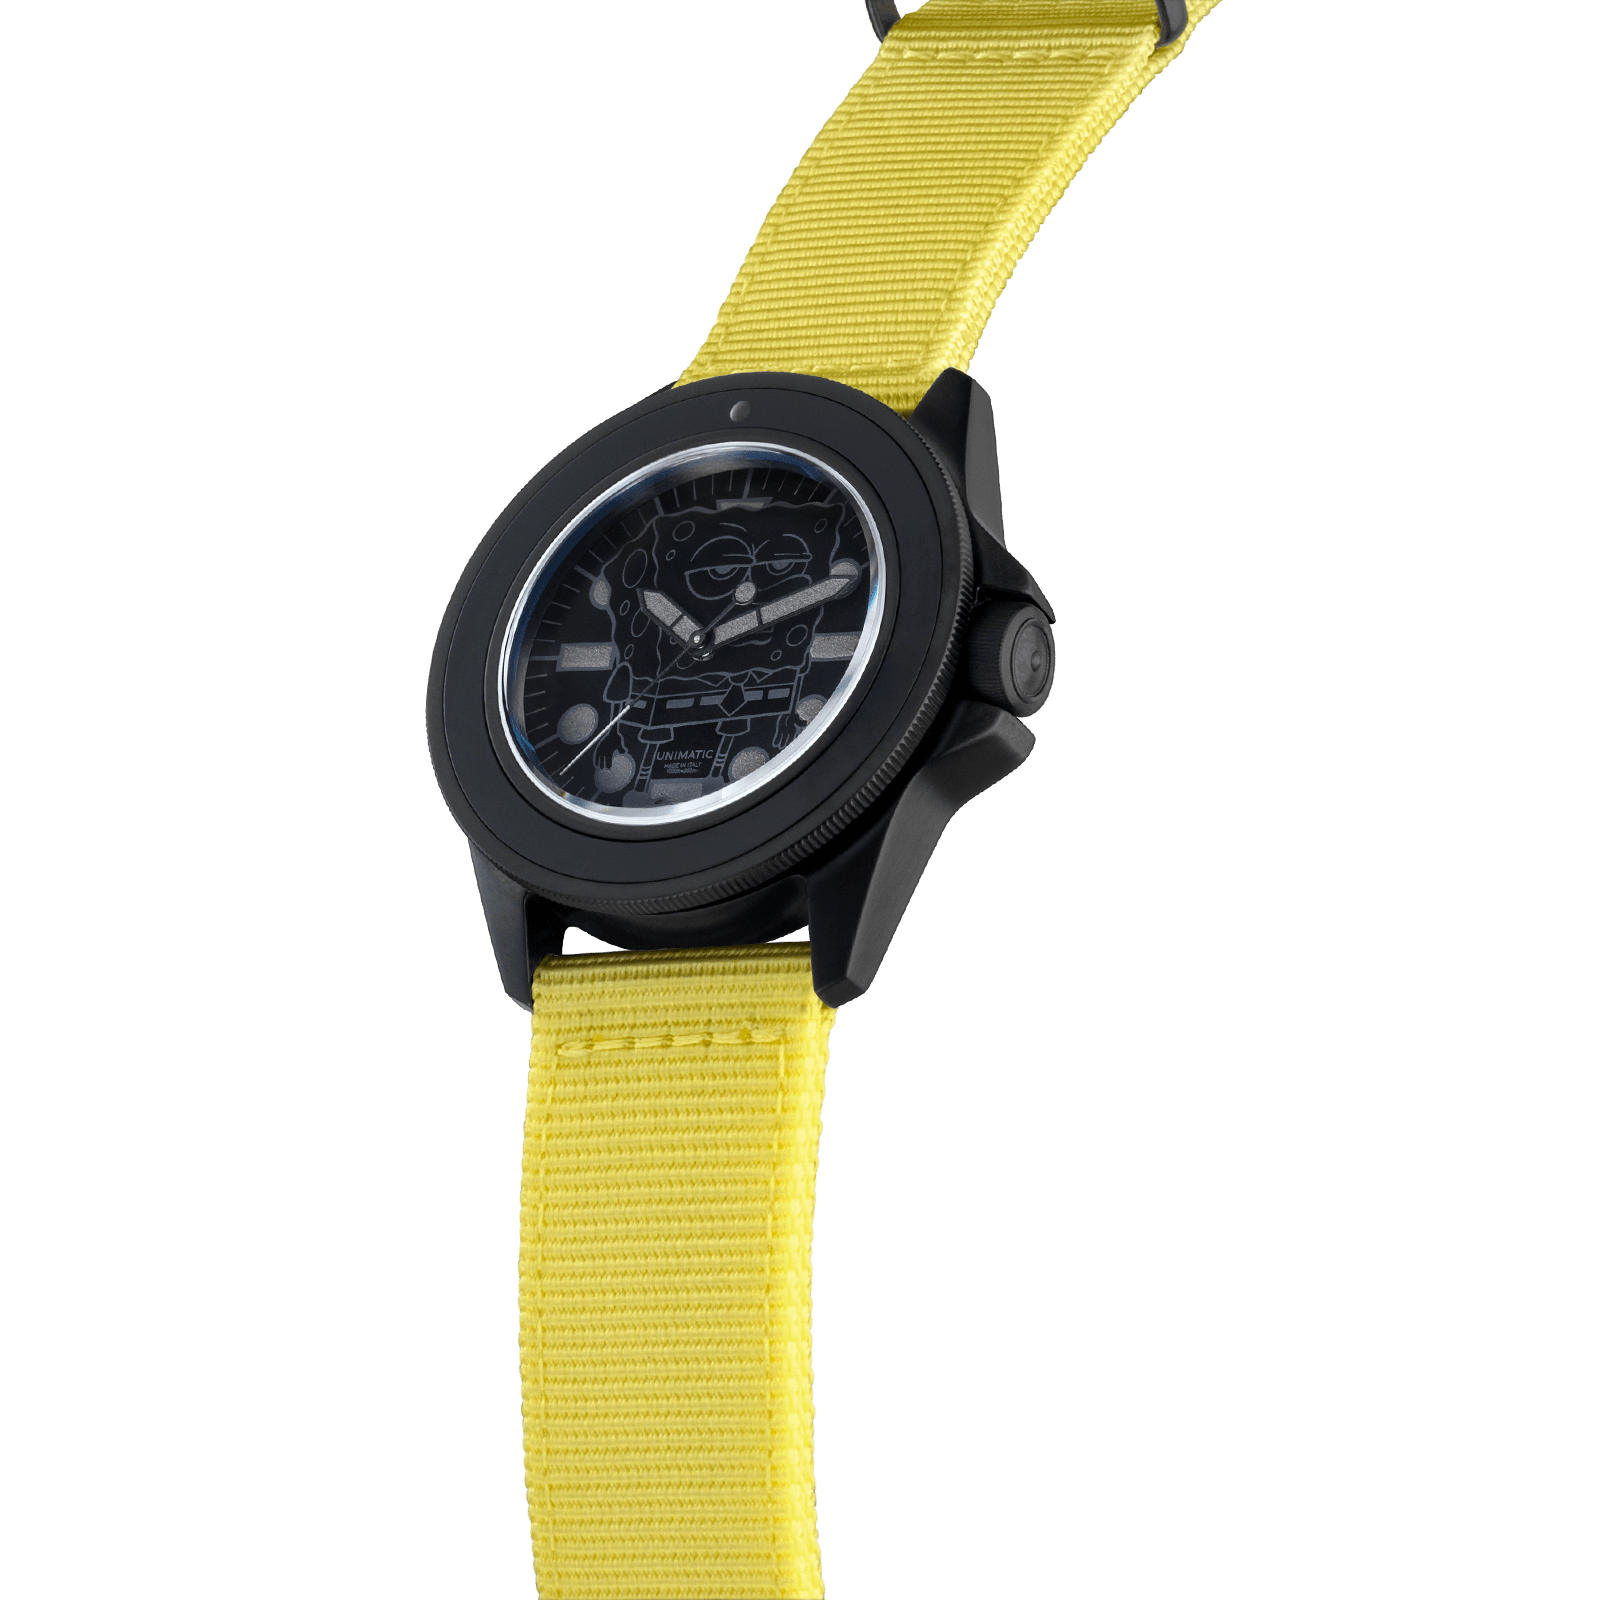 Unimatic U1-SS: The Unique Watch to Celebrates the 20th Anniversary of SpongeBob SquarePants,